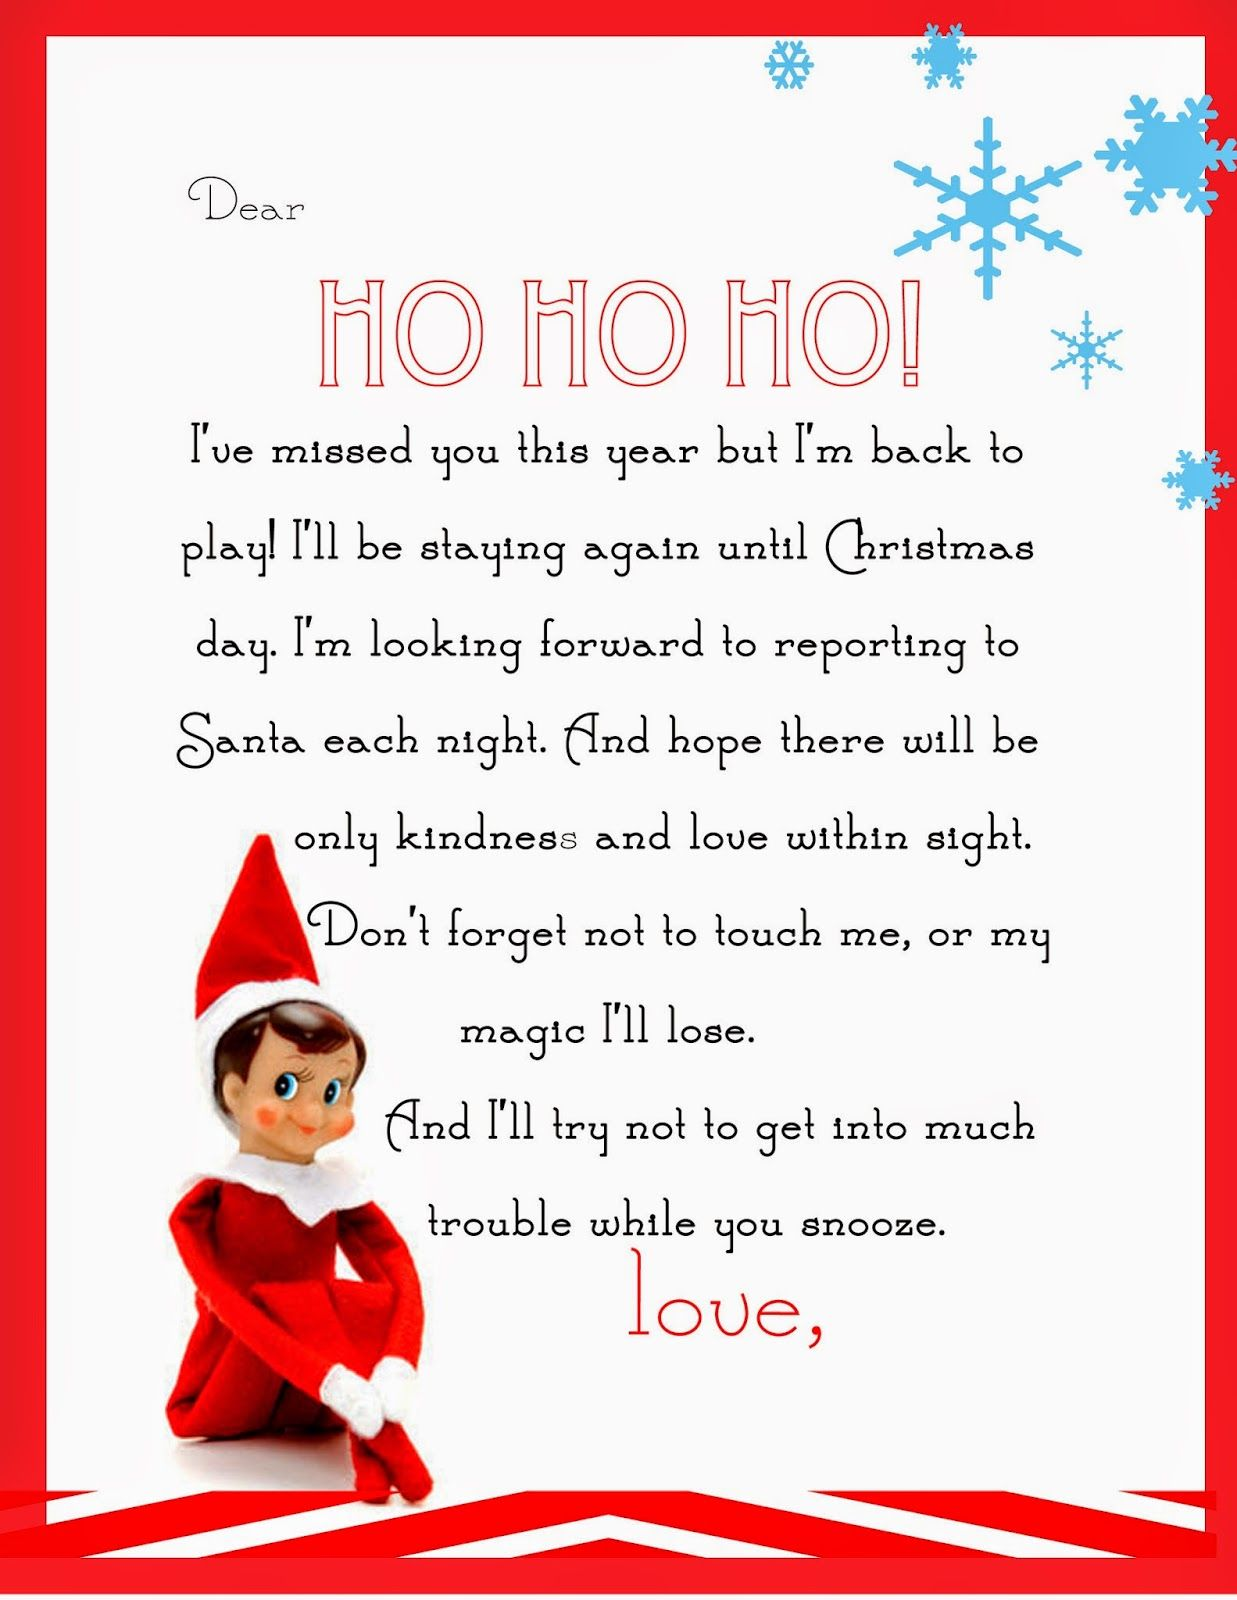 image regarding Elf on the Shelf Goodbye Letter Free Printable identified as Elf upon the Shelf Letter absolutely free printable Para las muñecas